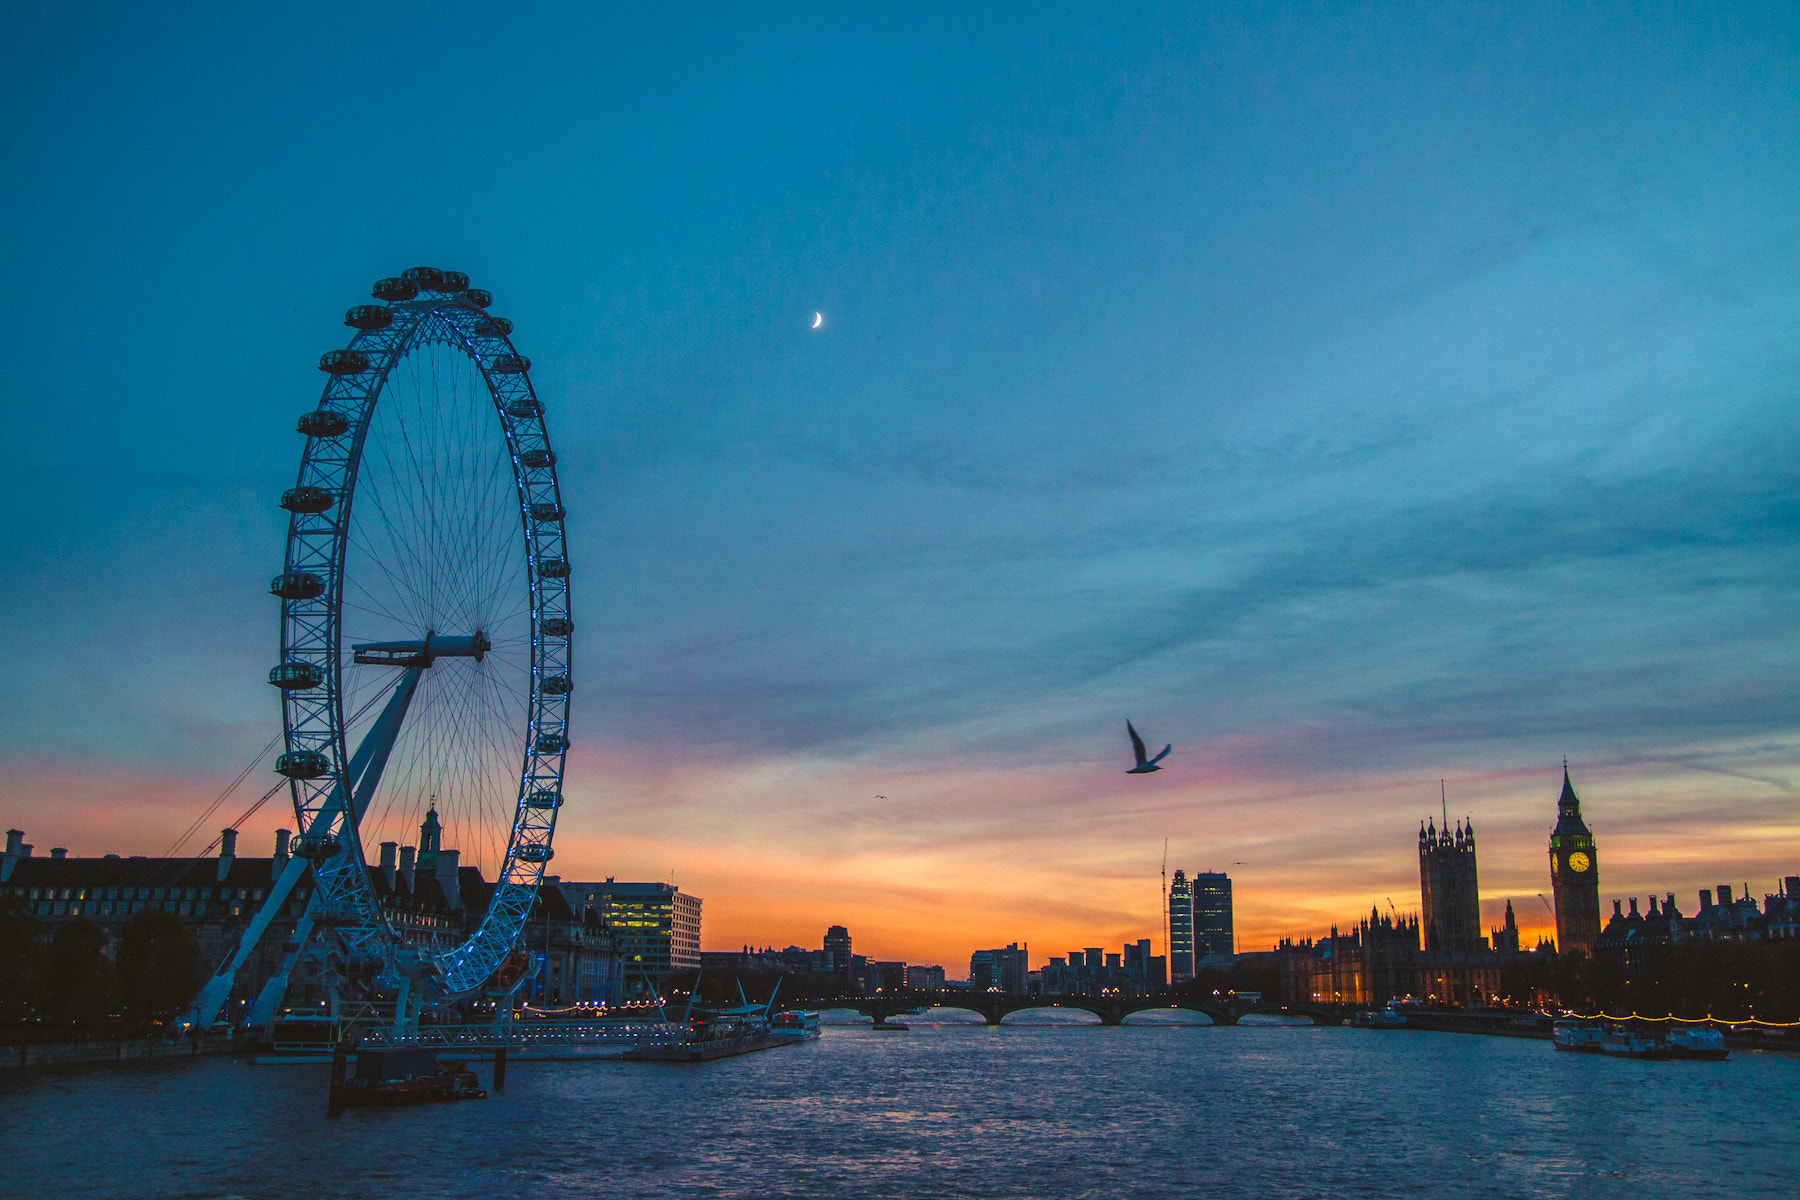 Photograph London Eye by Julia Caban on 500px